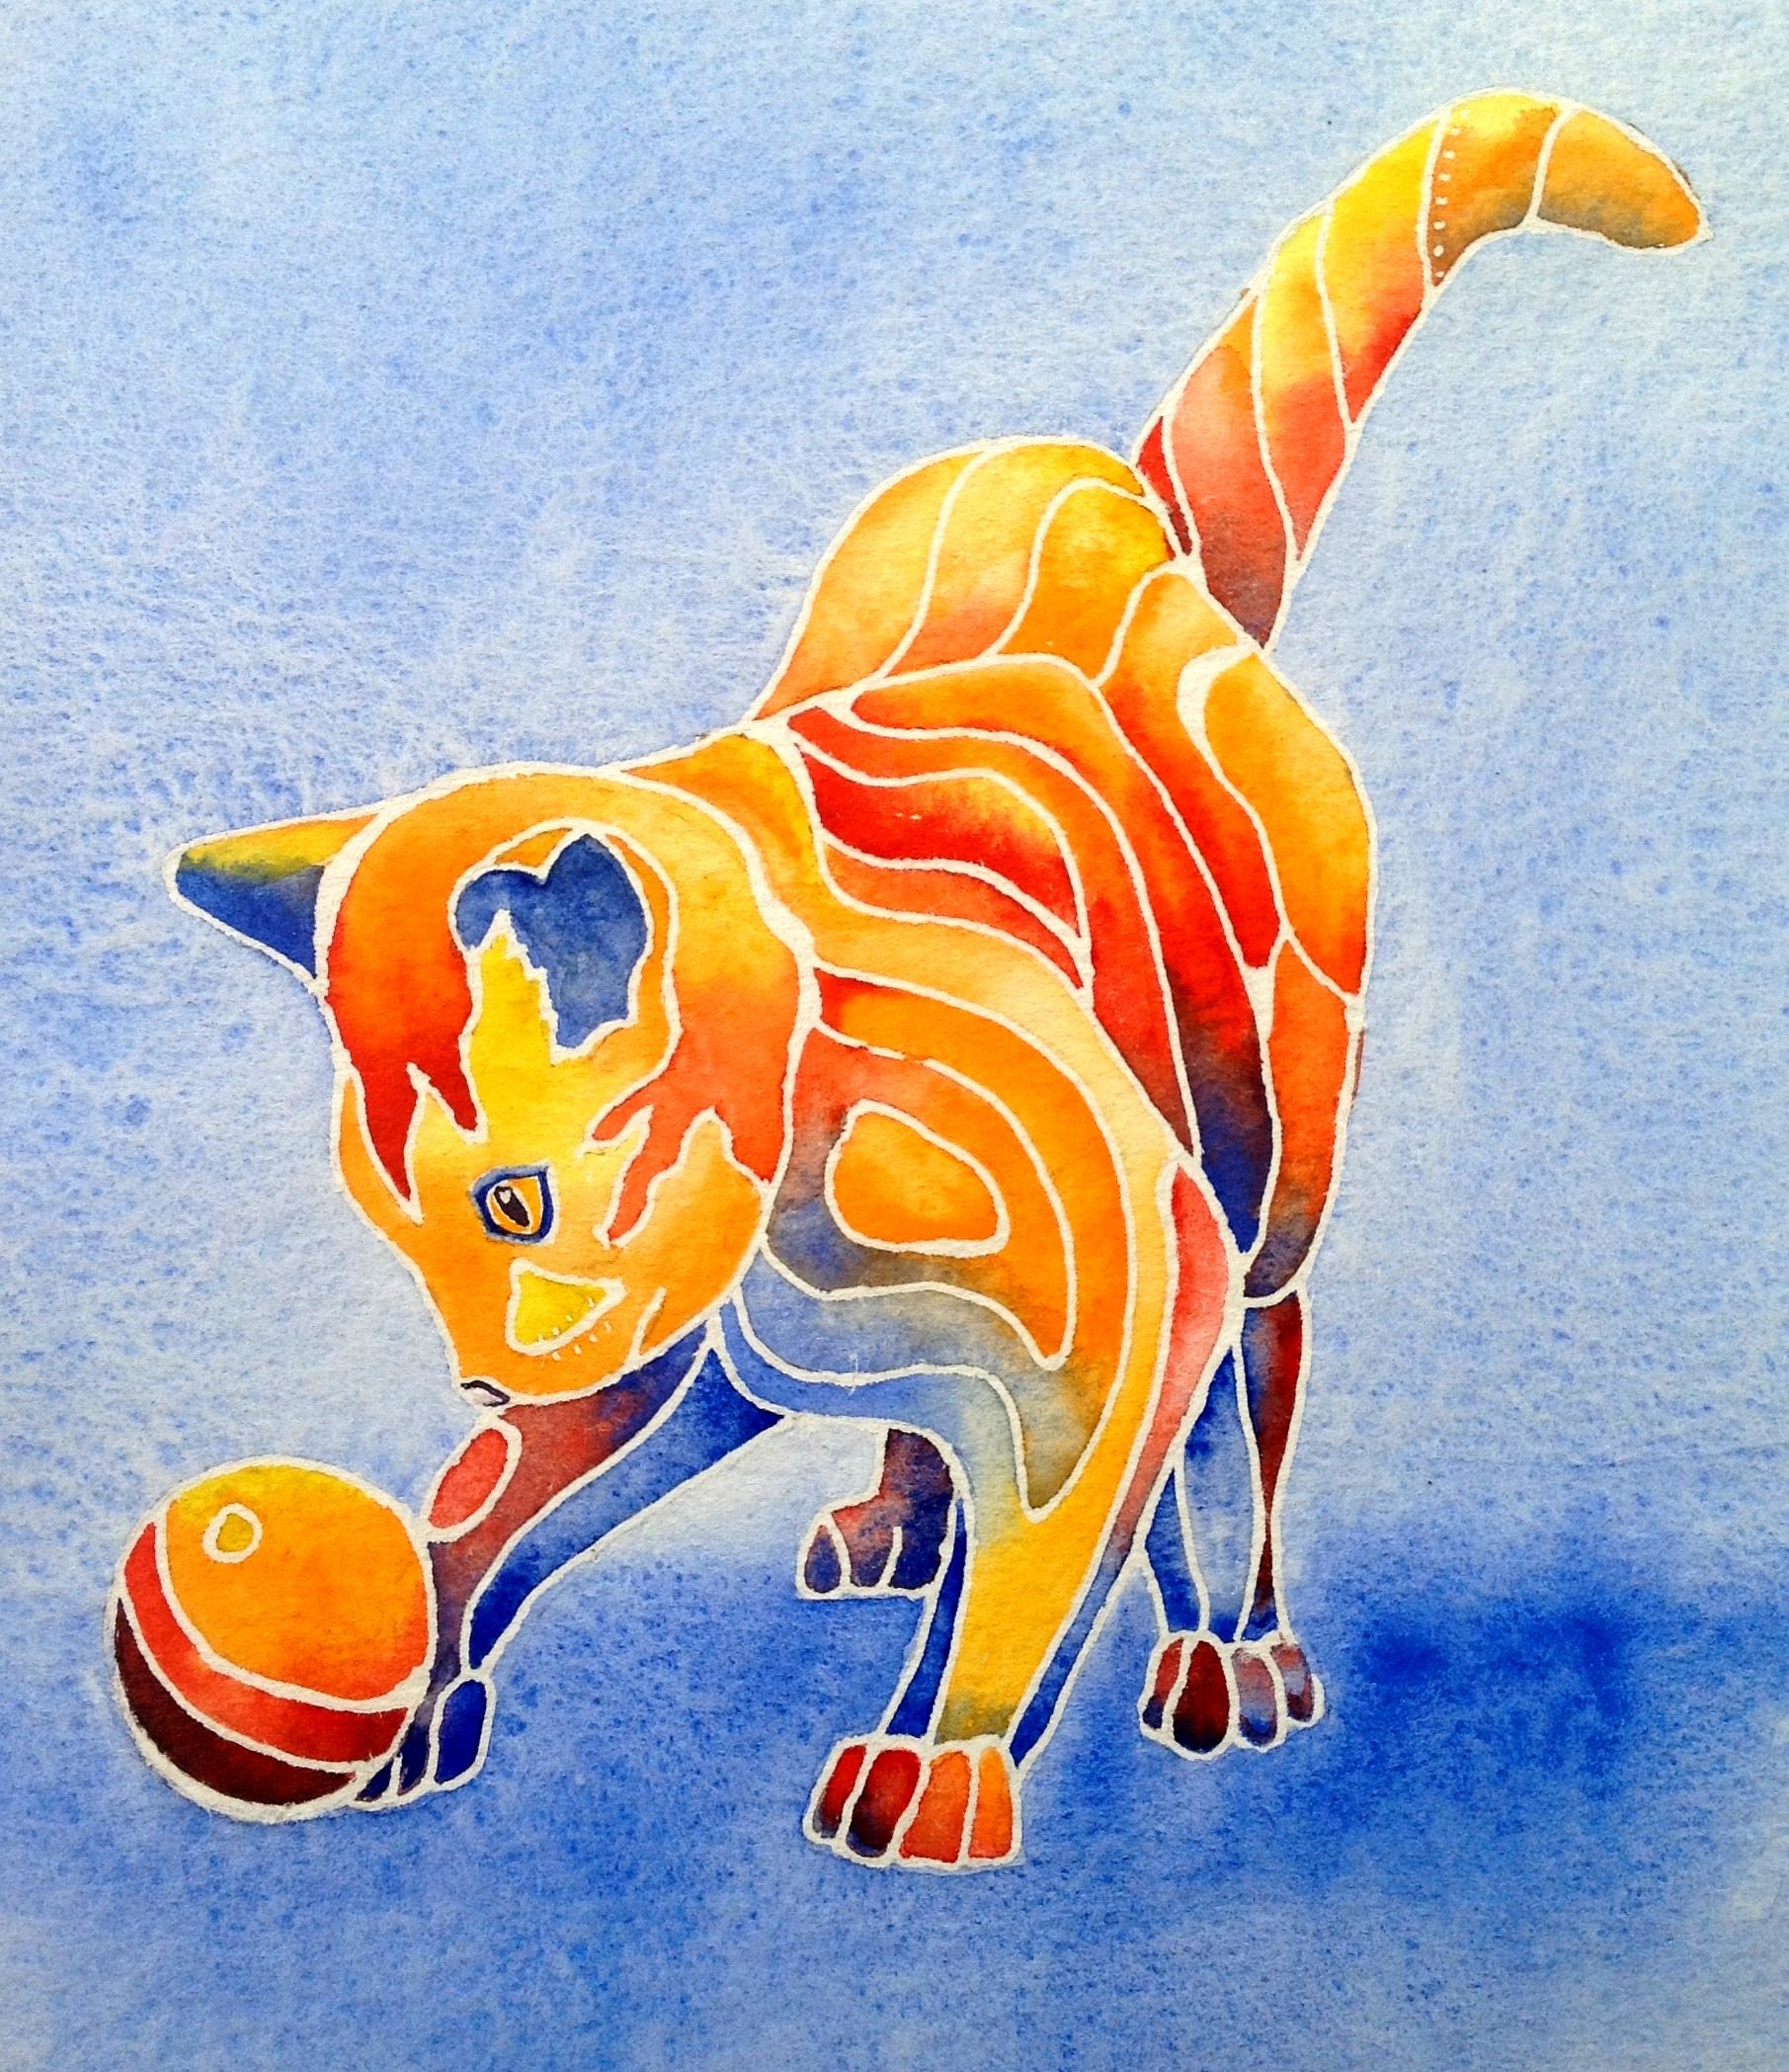 great watercolor exercise using warm and cool tones plimentary